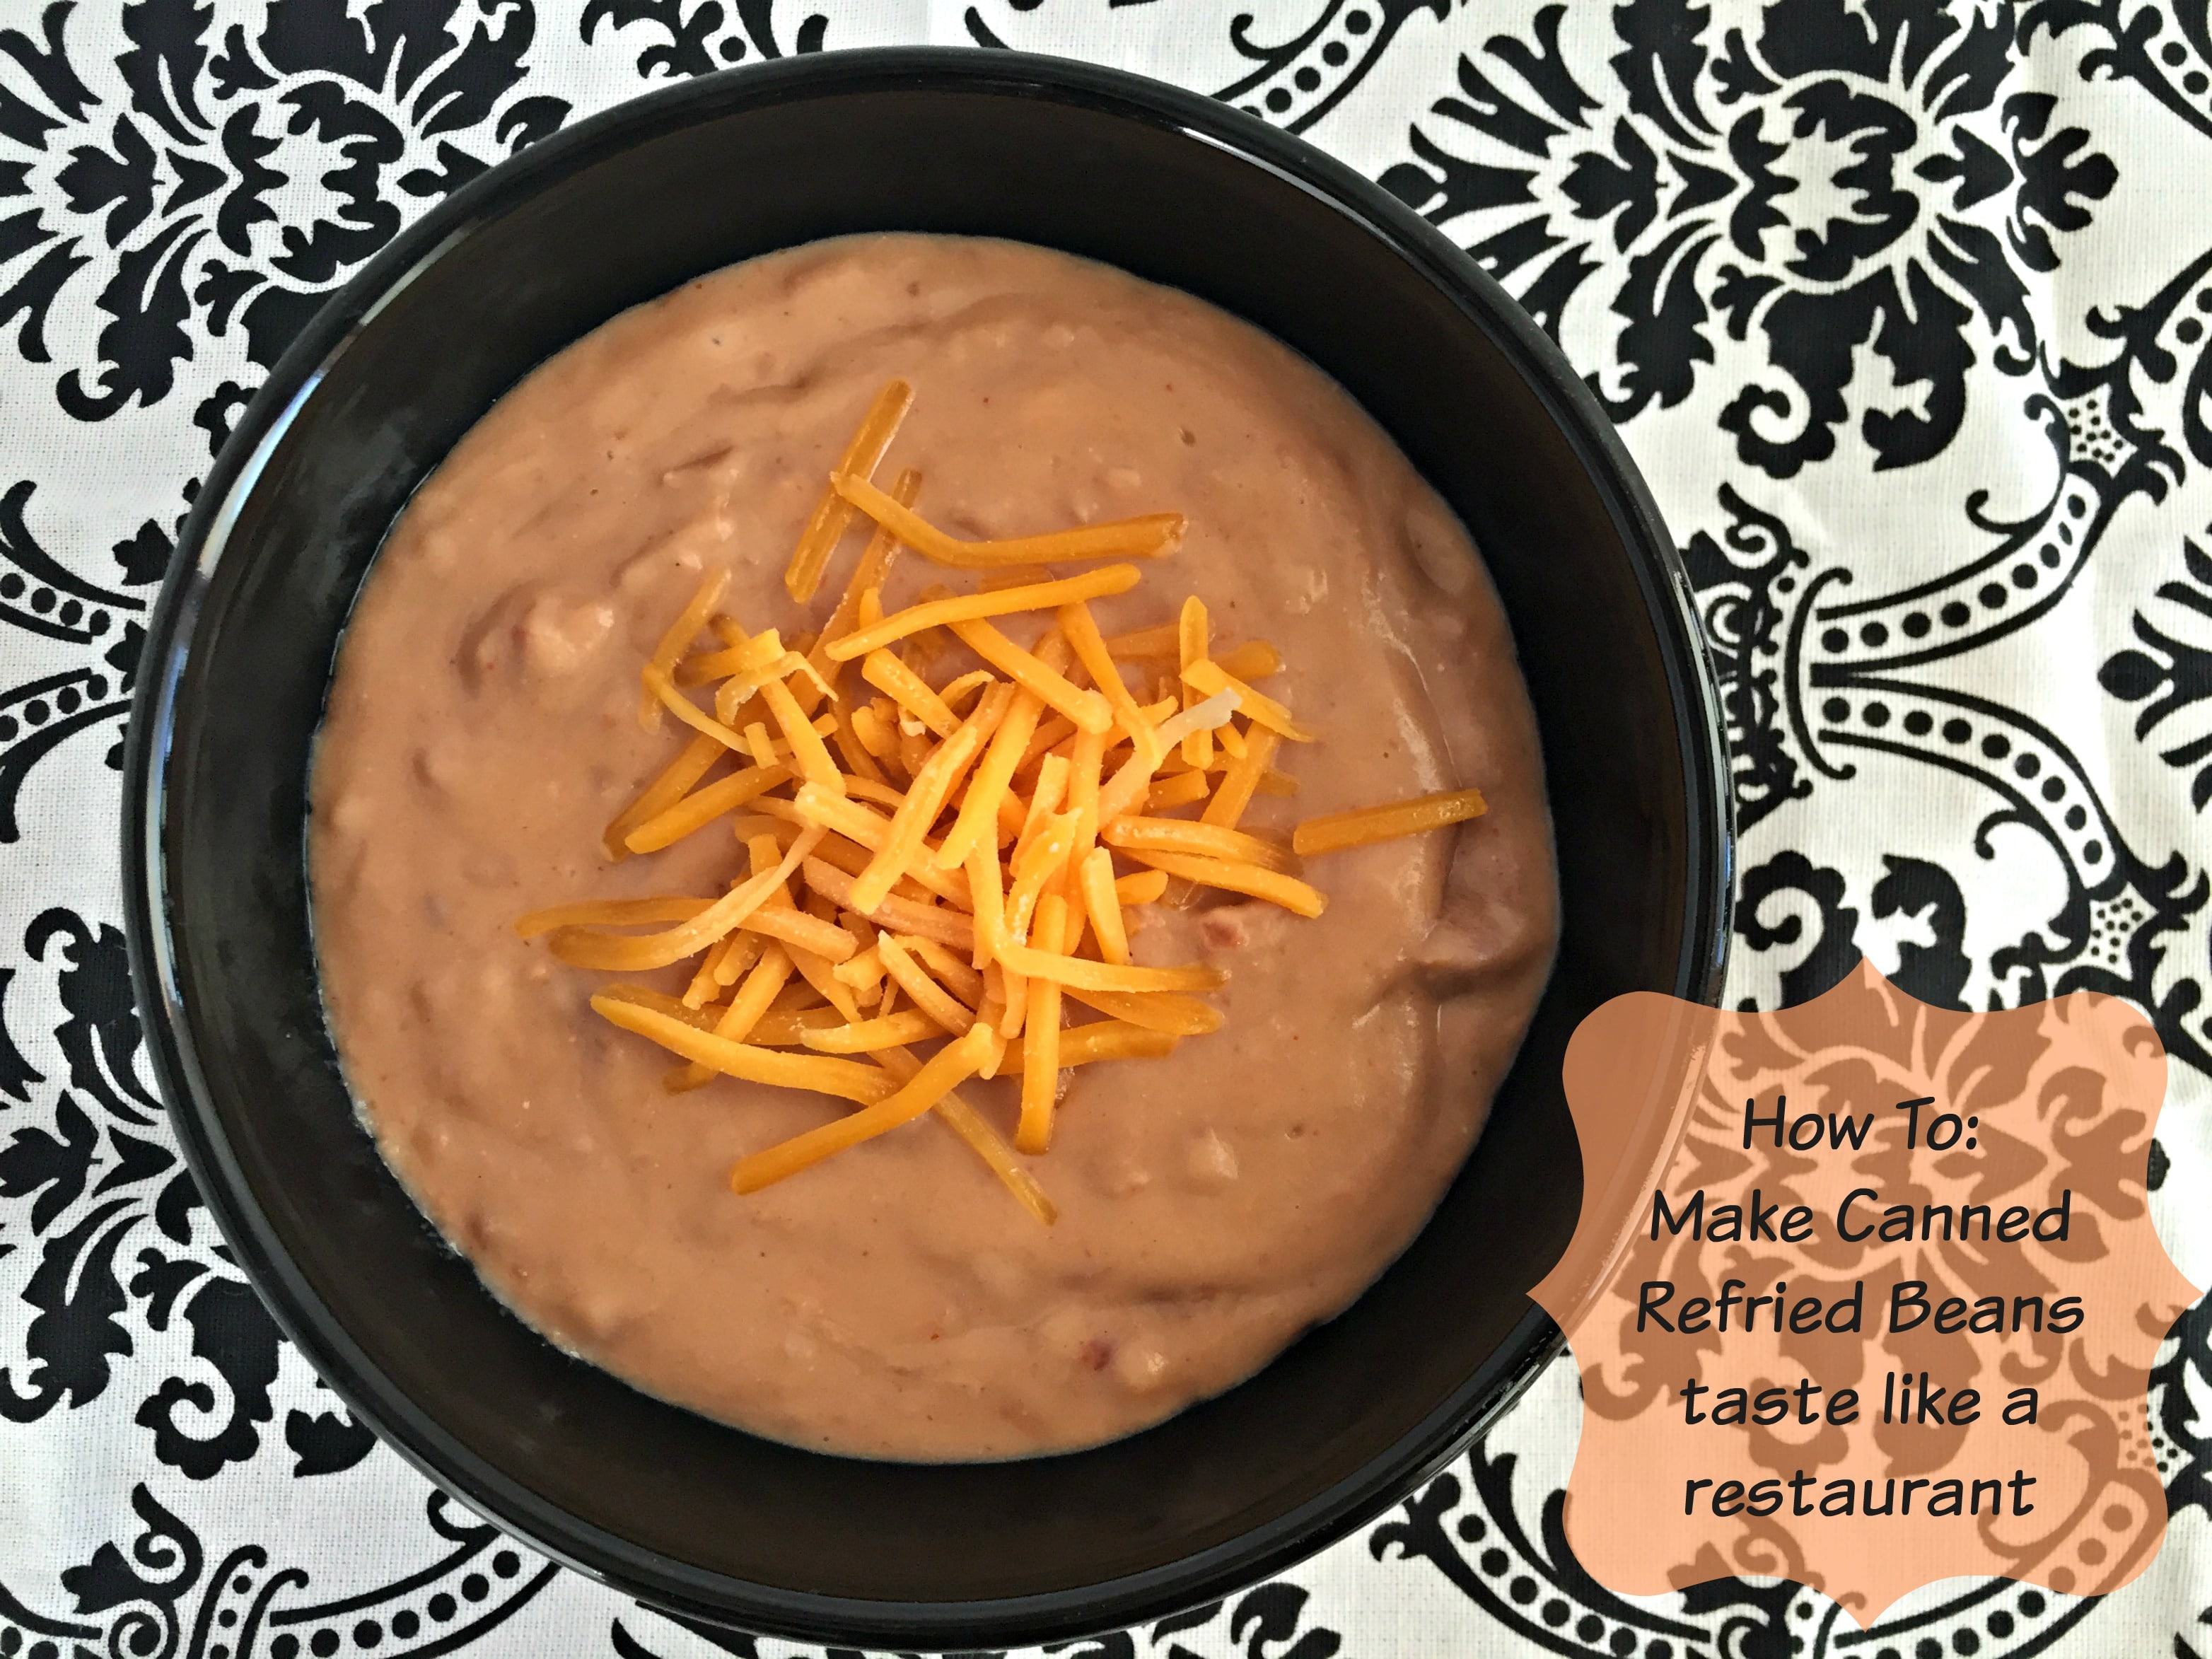 how to make canned refried beans taste like a restaurant